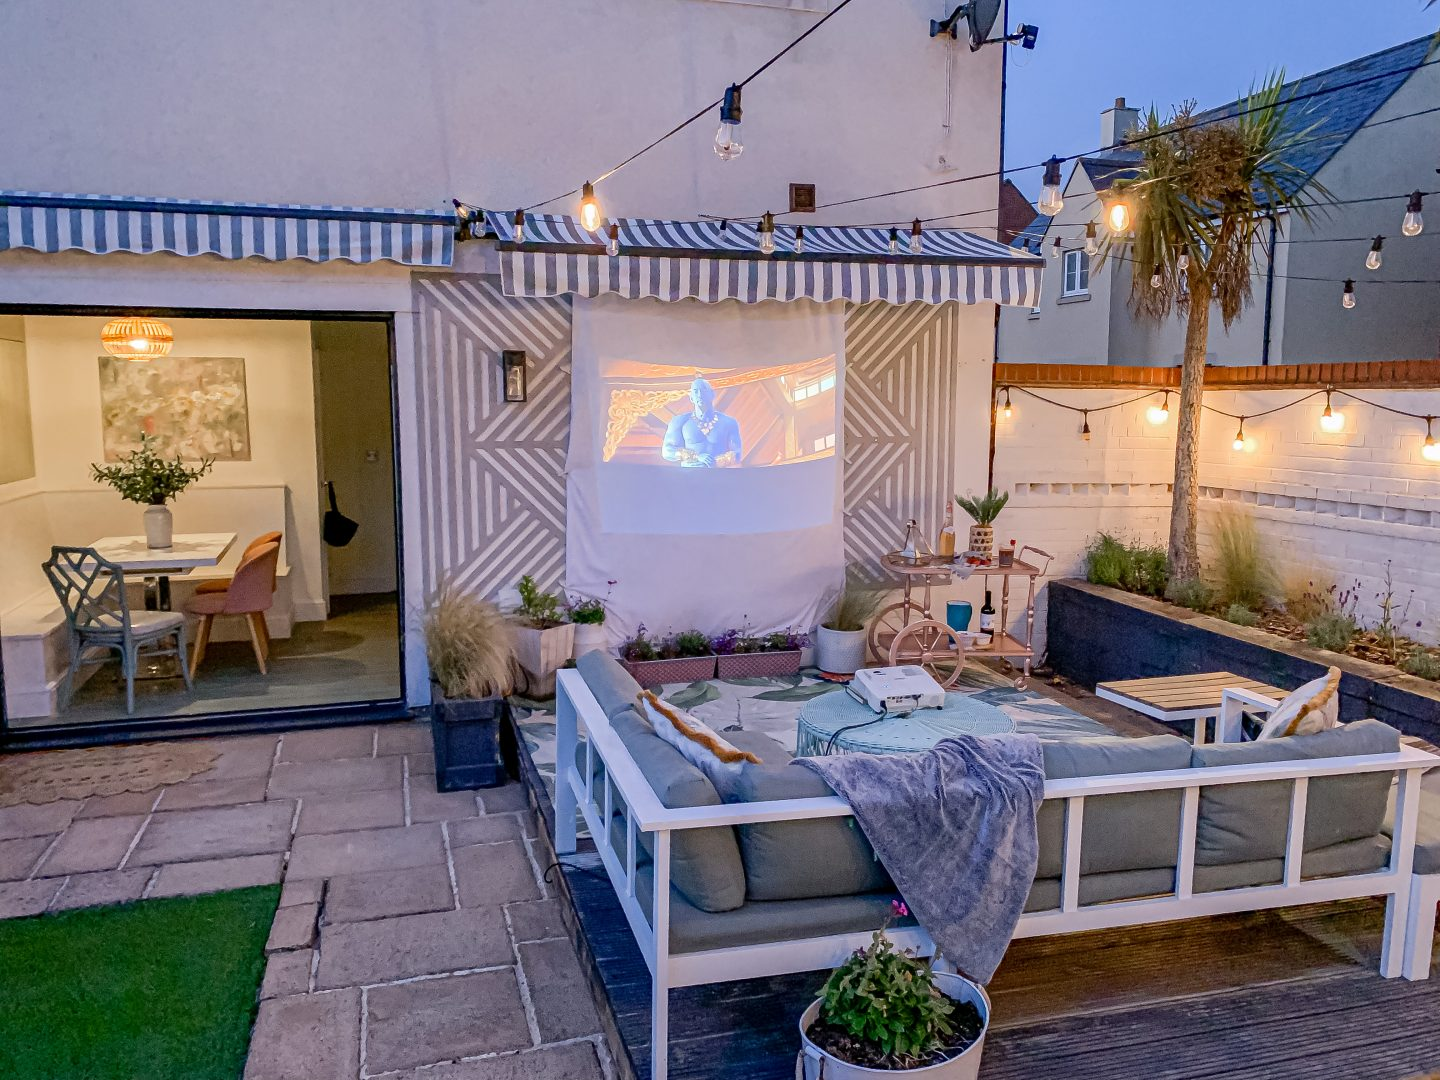 10 TOP TIPS FOR CREATING THE PERFECT HOME CINEMA